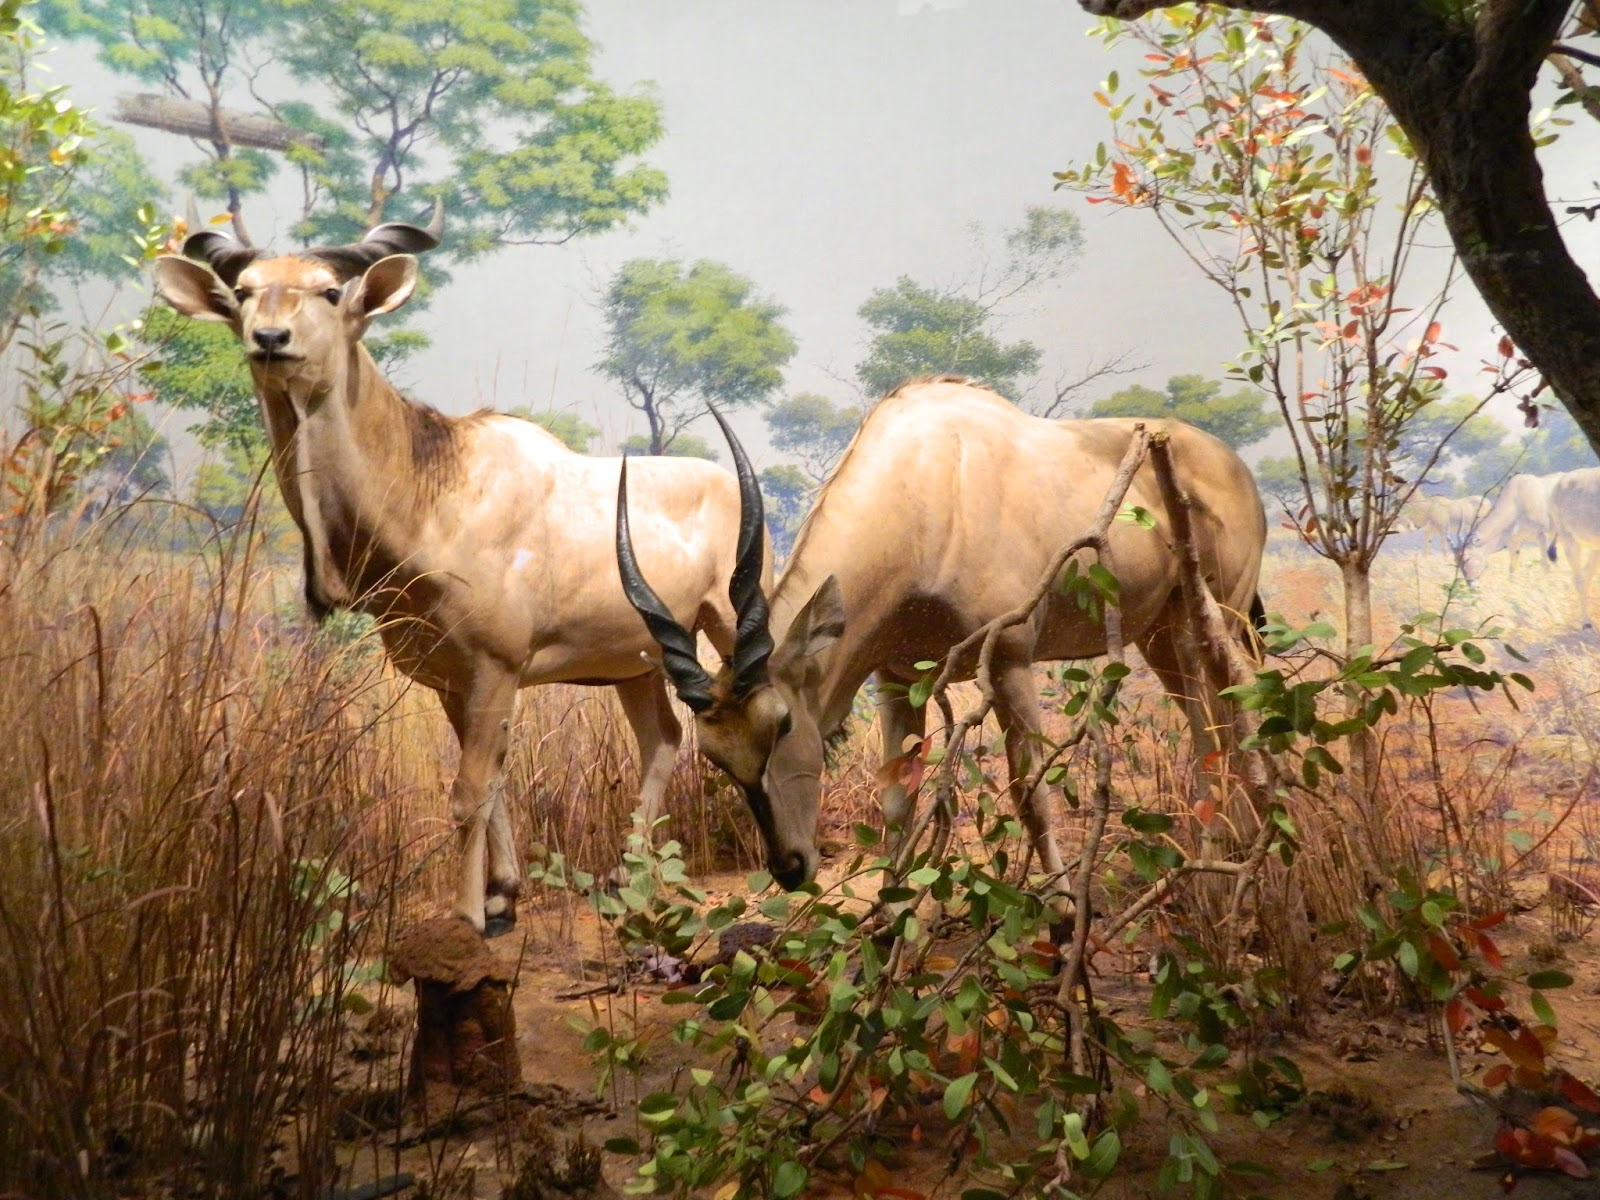 new york city american national history museum animal  inside stuffed taxidermy deer tree